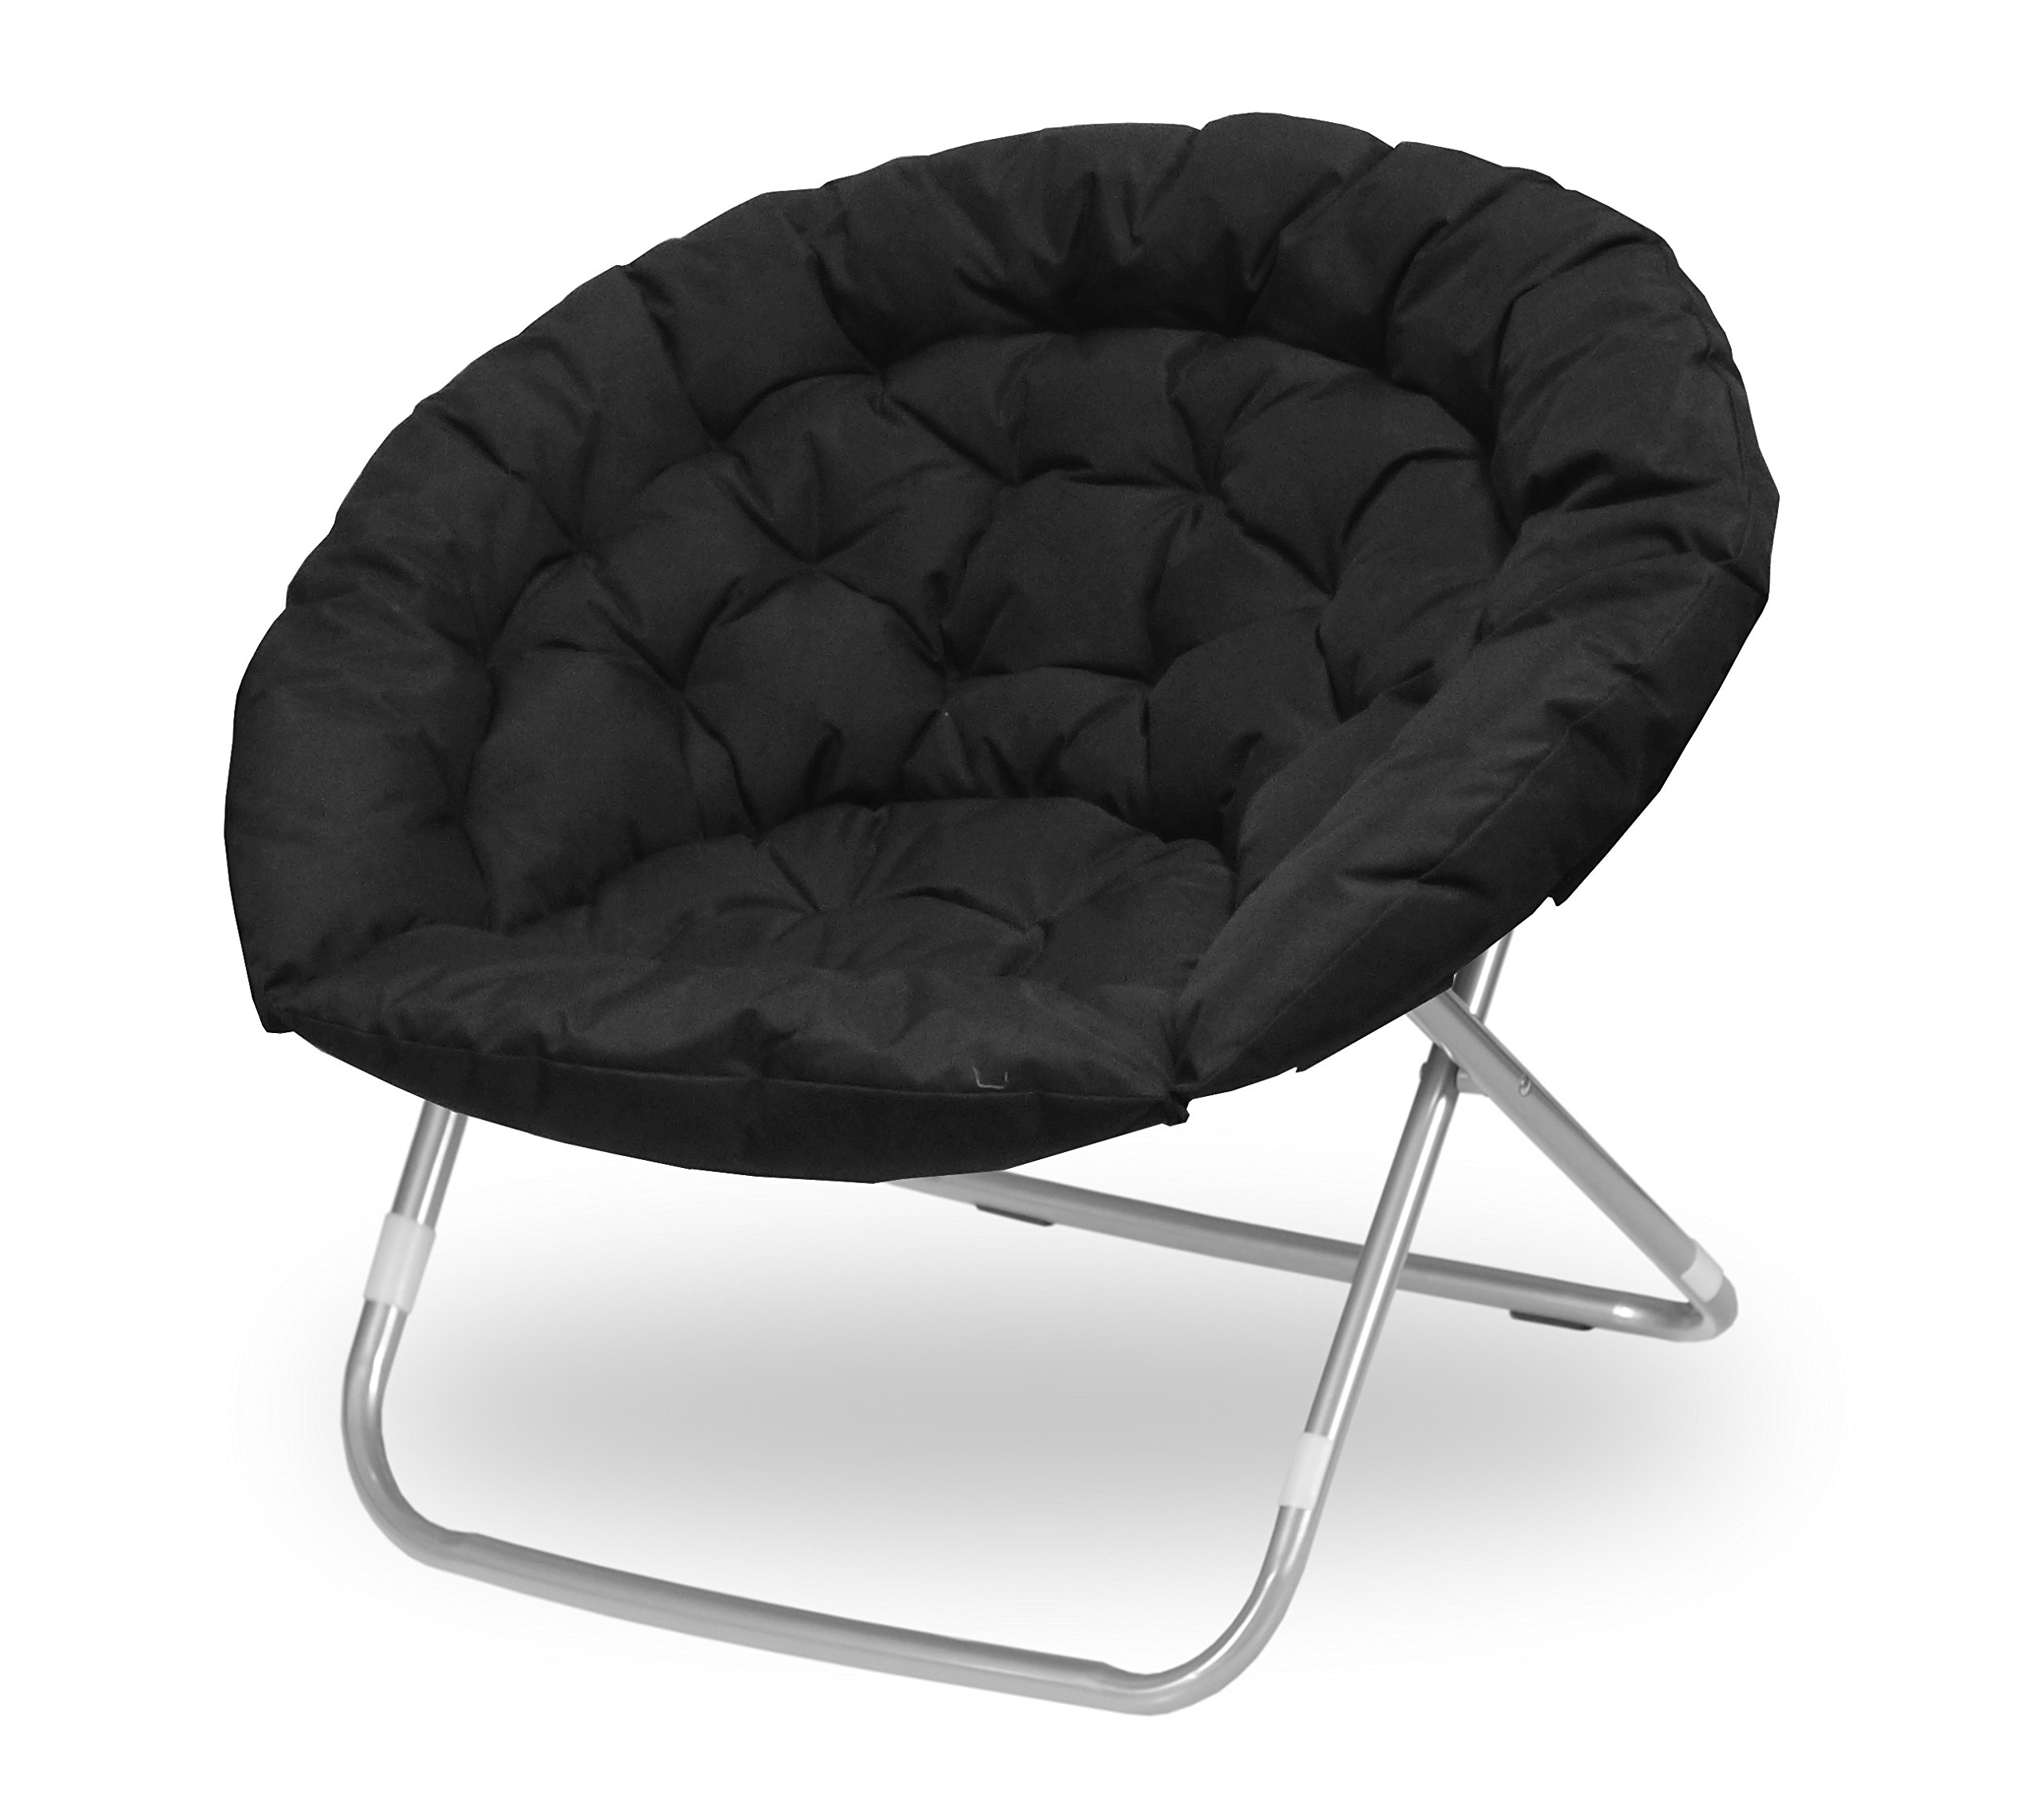 Urban Shop Oversized Saucer Chair, Black by Urban Shop